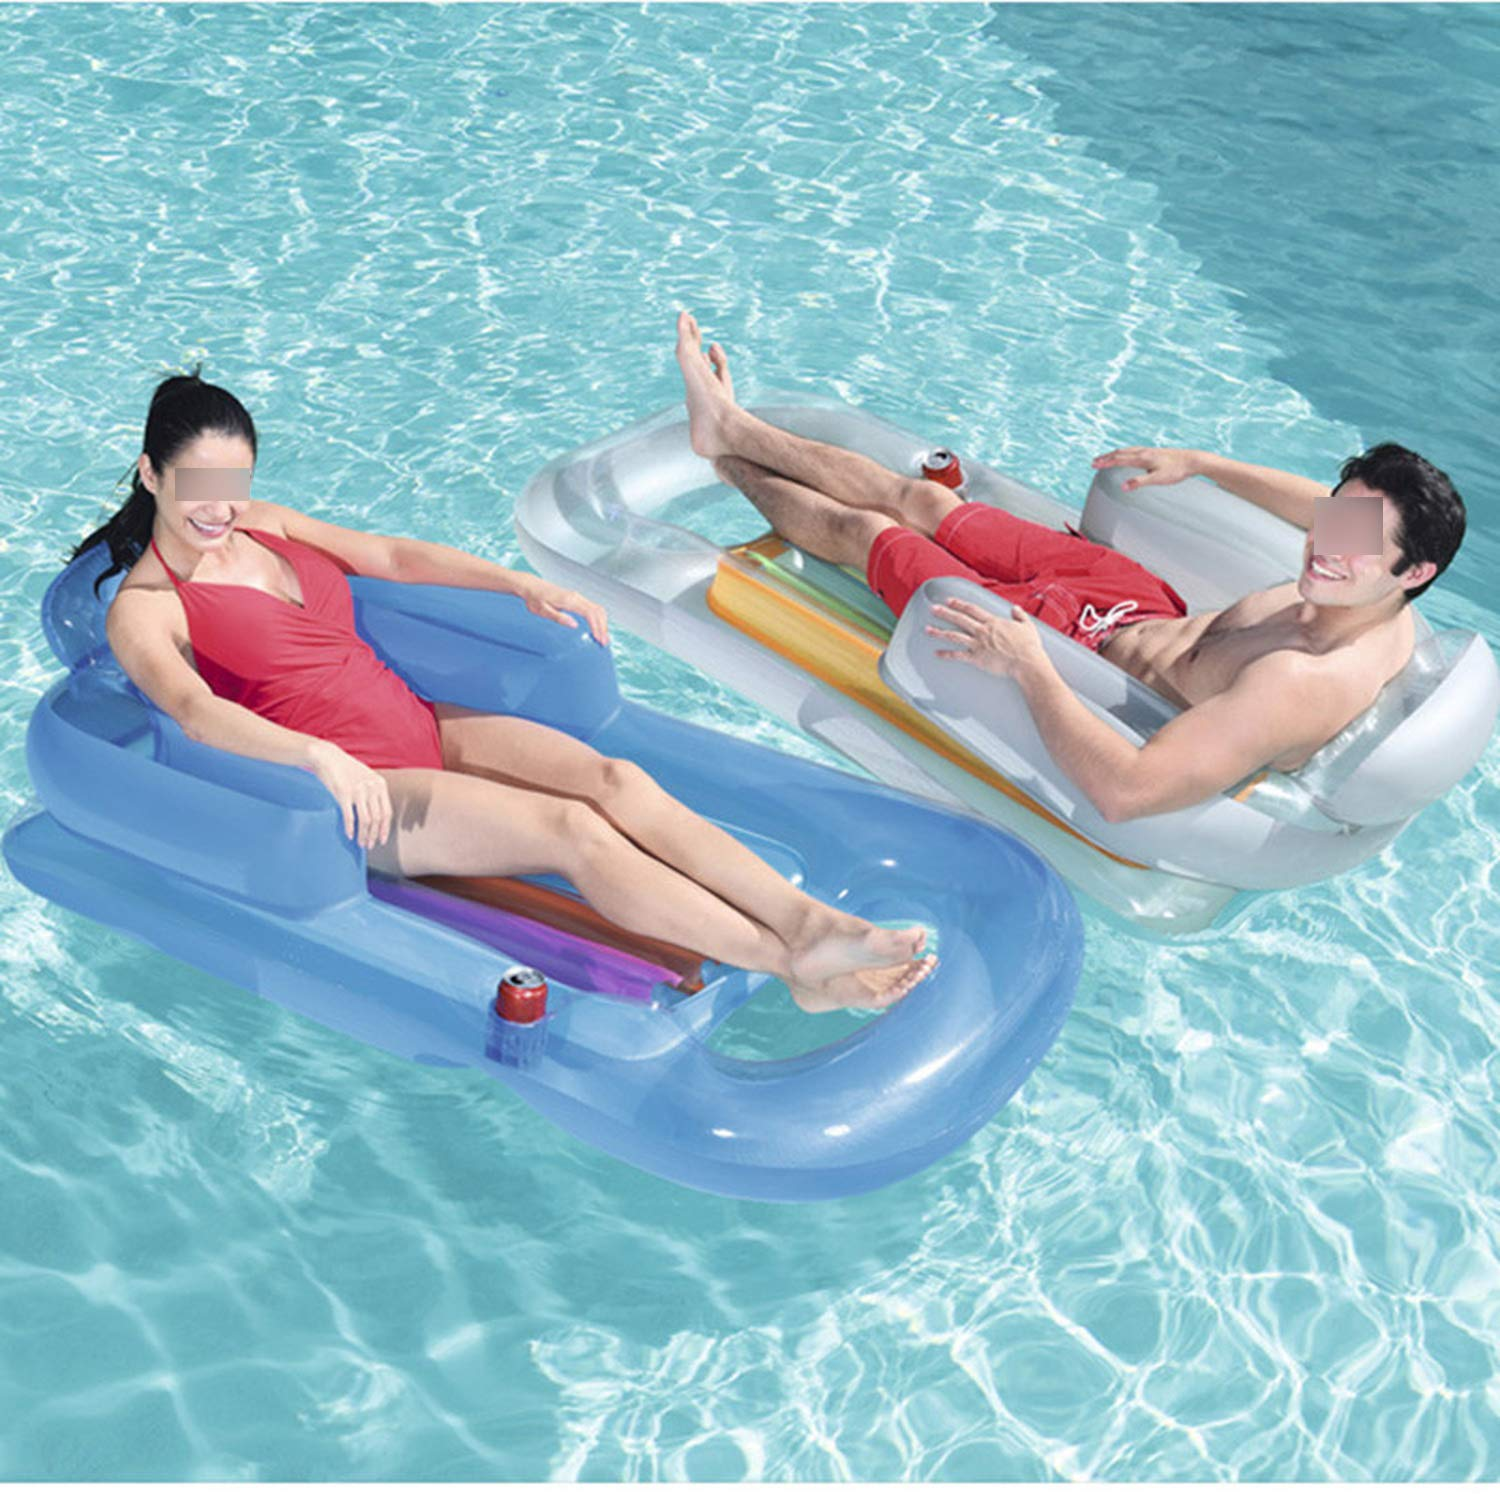 QIUHUAXIANG Inflatable Floating Row 157X89Cm Beach Swimming Air Mattress Pool Floats Floating Lounge Sleeping Bed for Water Sports Party,Random Color by QIUHUAXIANG (Image #4)